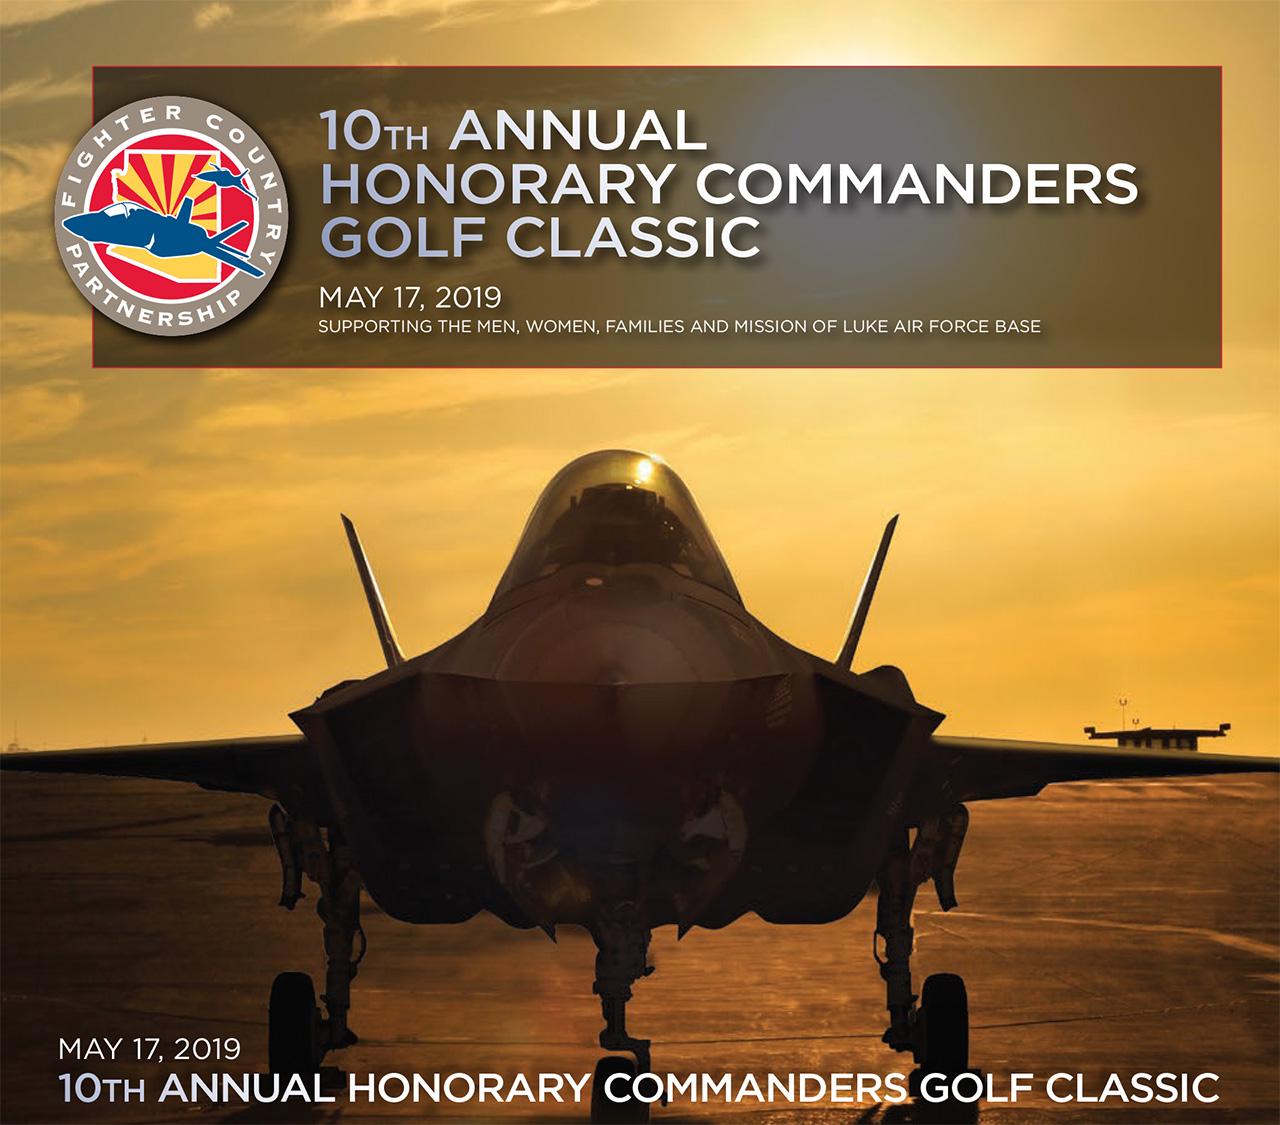 2019 10th Annual Honorary Commanders Golf Classic